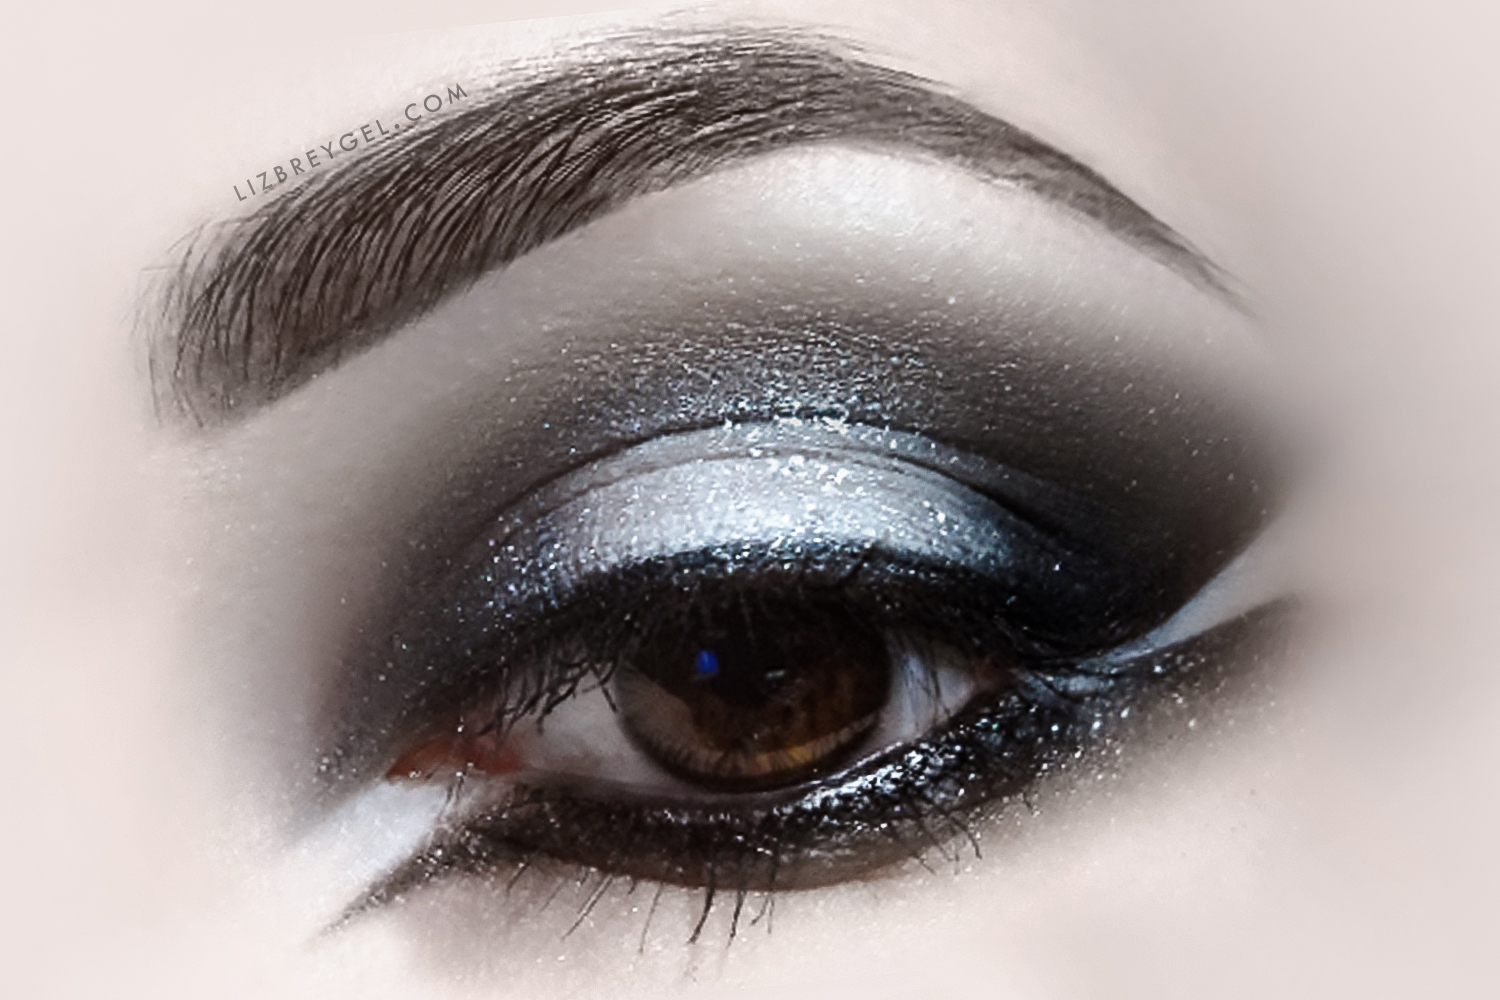 a close up picture of dark, gothic eye makeup look